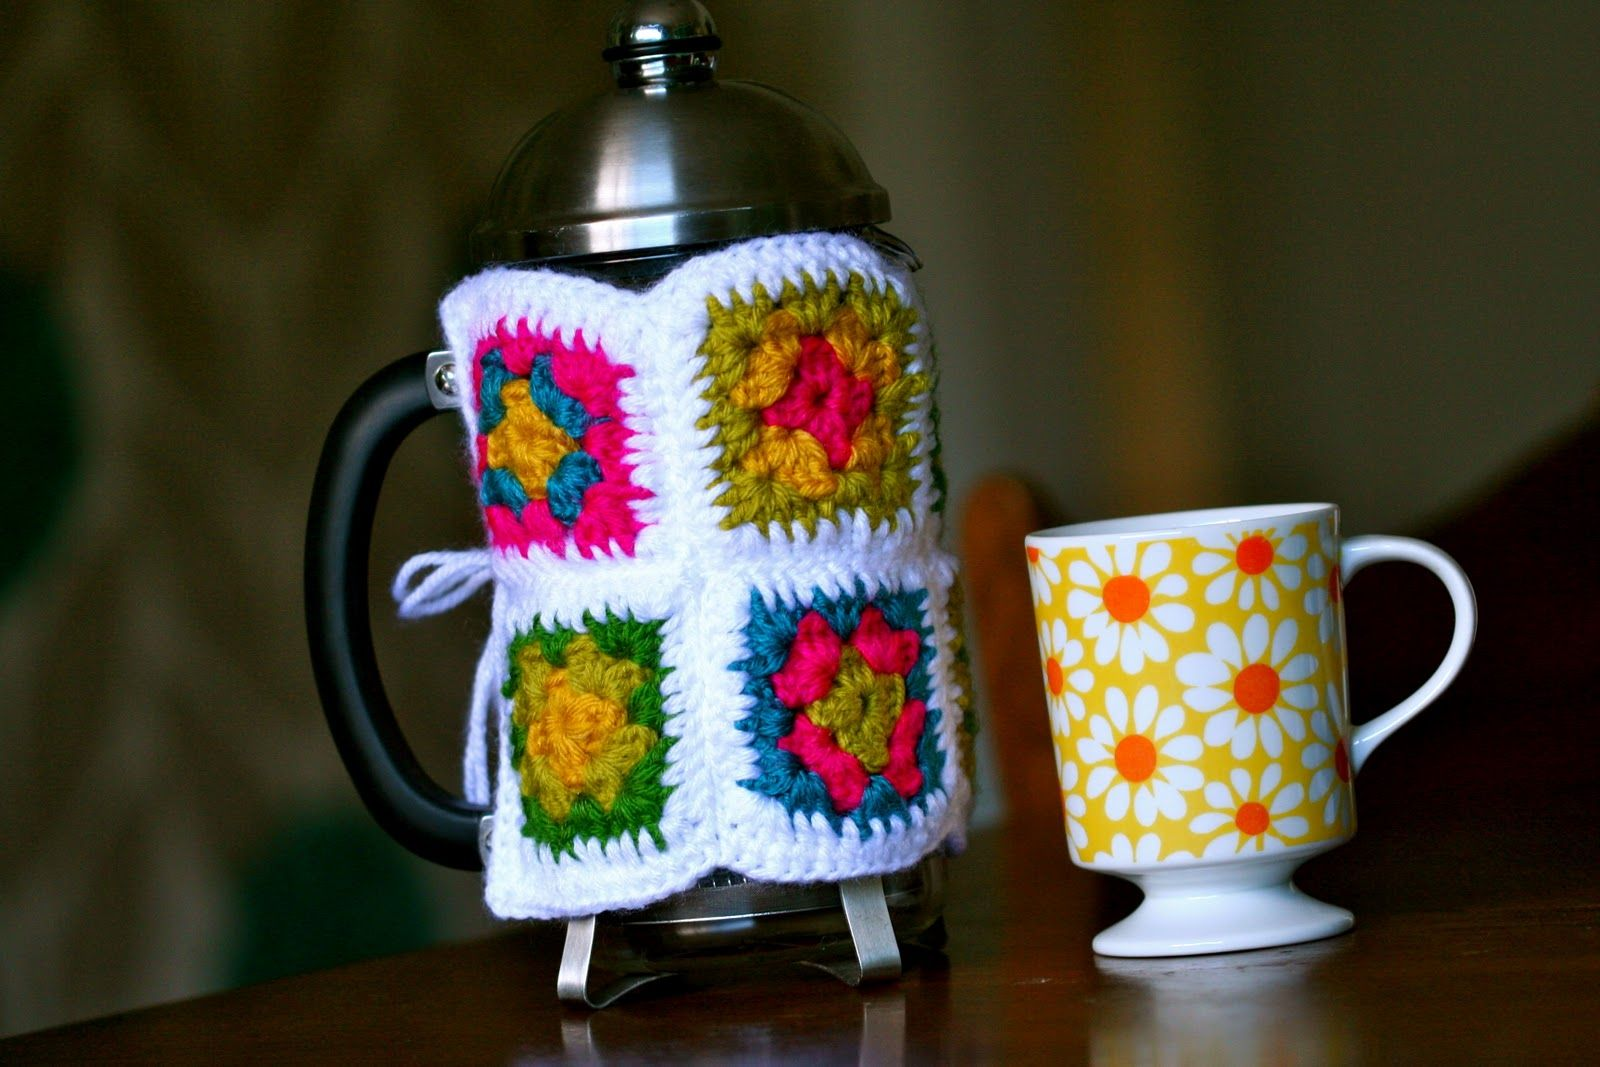 Crocheted granny square french press cozy